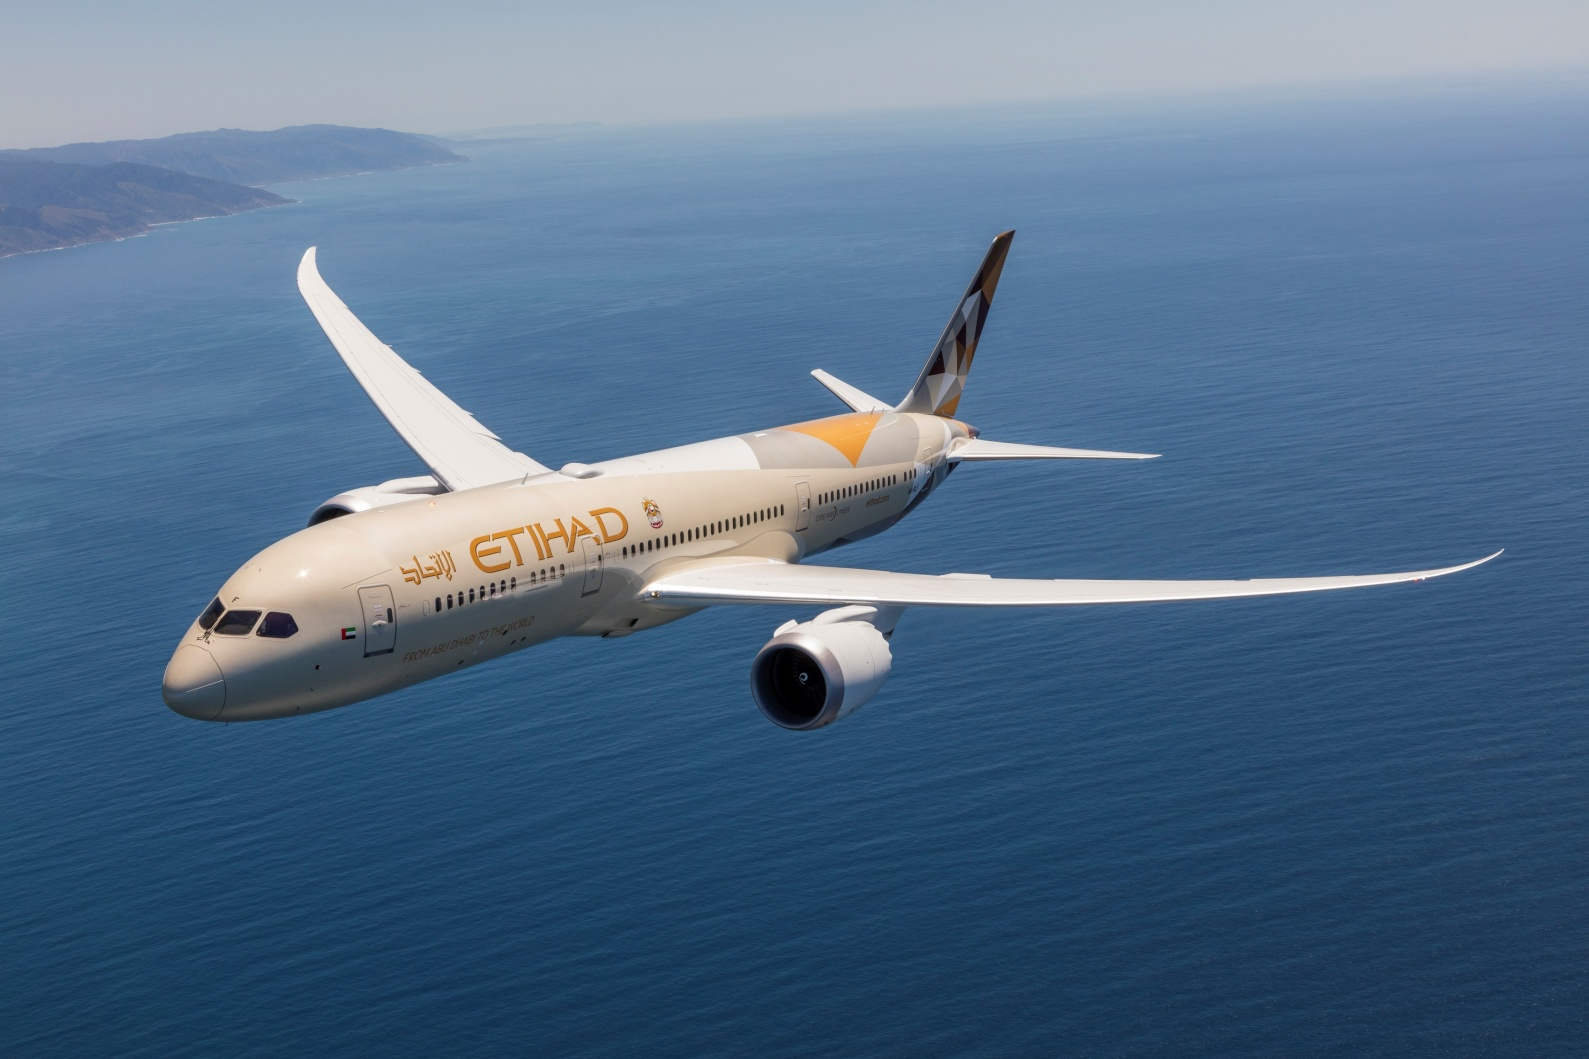 gallery/etihad airways boeing 787-9 forward